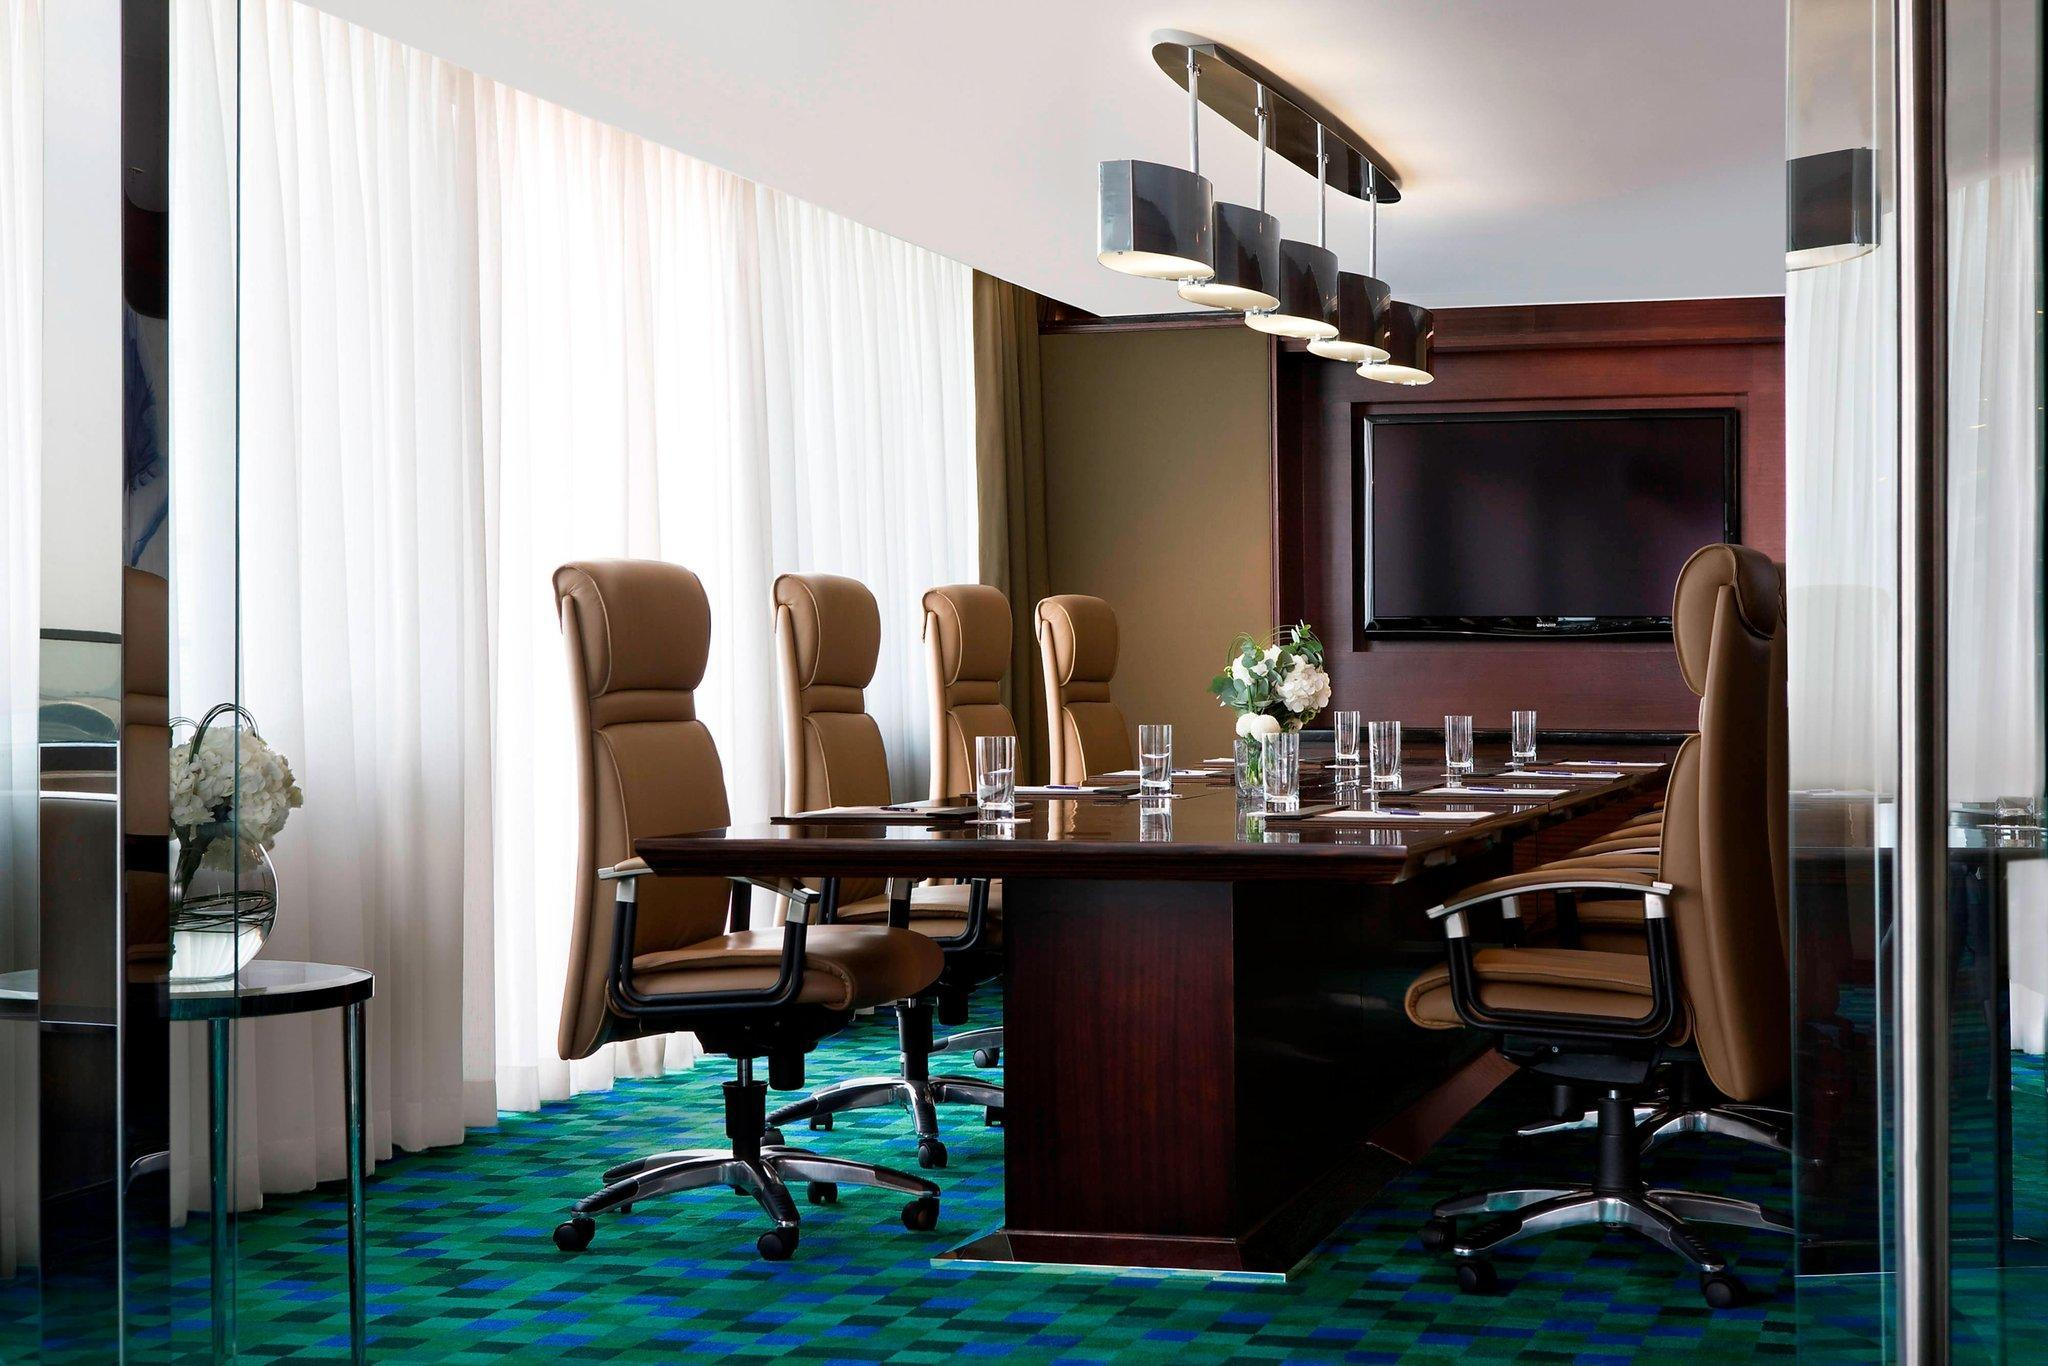 EXECUTIVE ROOM, Executive lounge access, Guest room